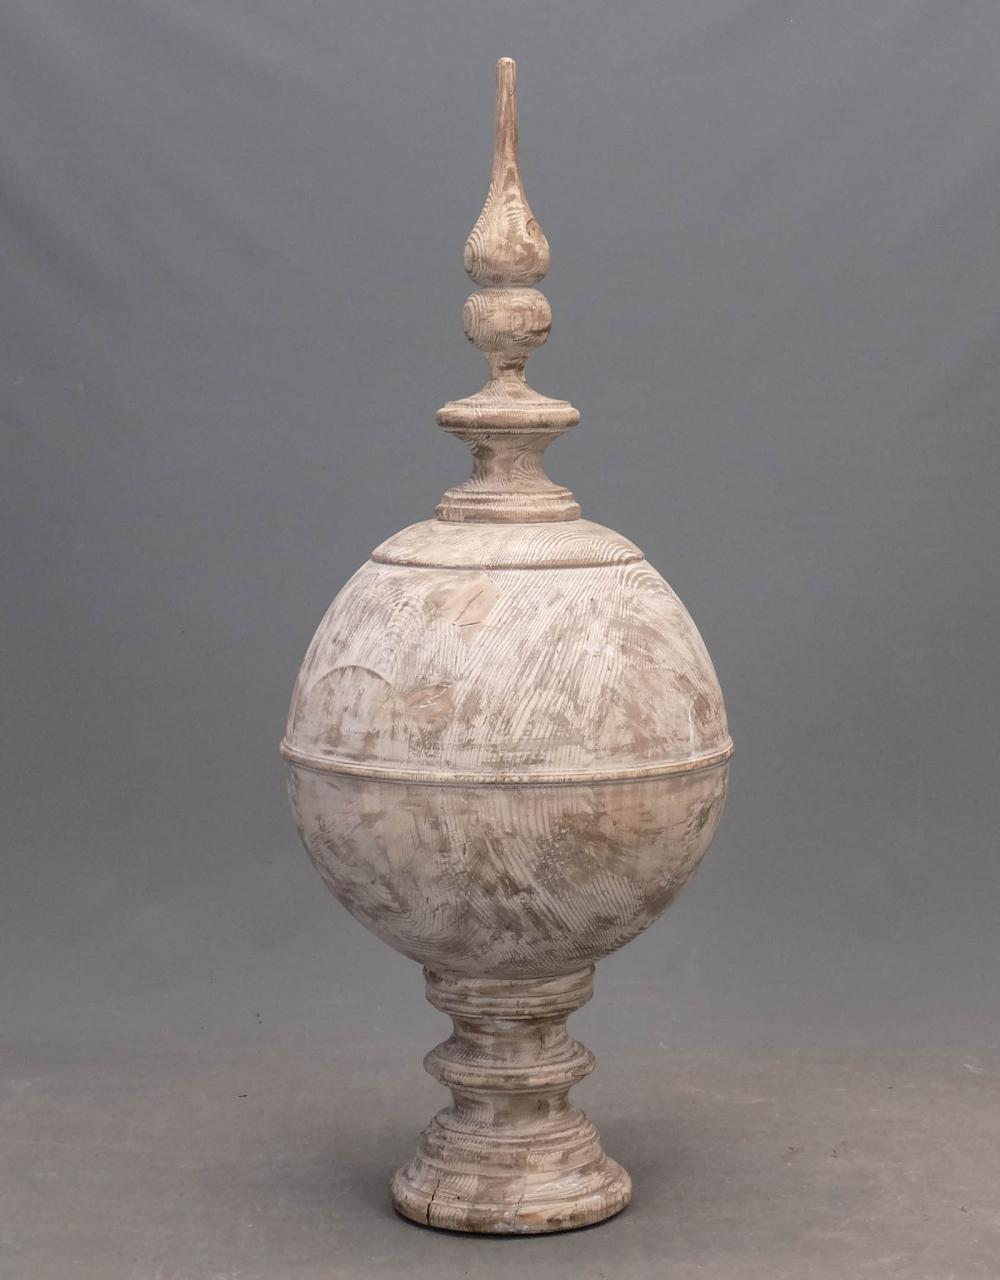 Lot 131: Wooden Architectural Finial